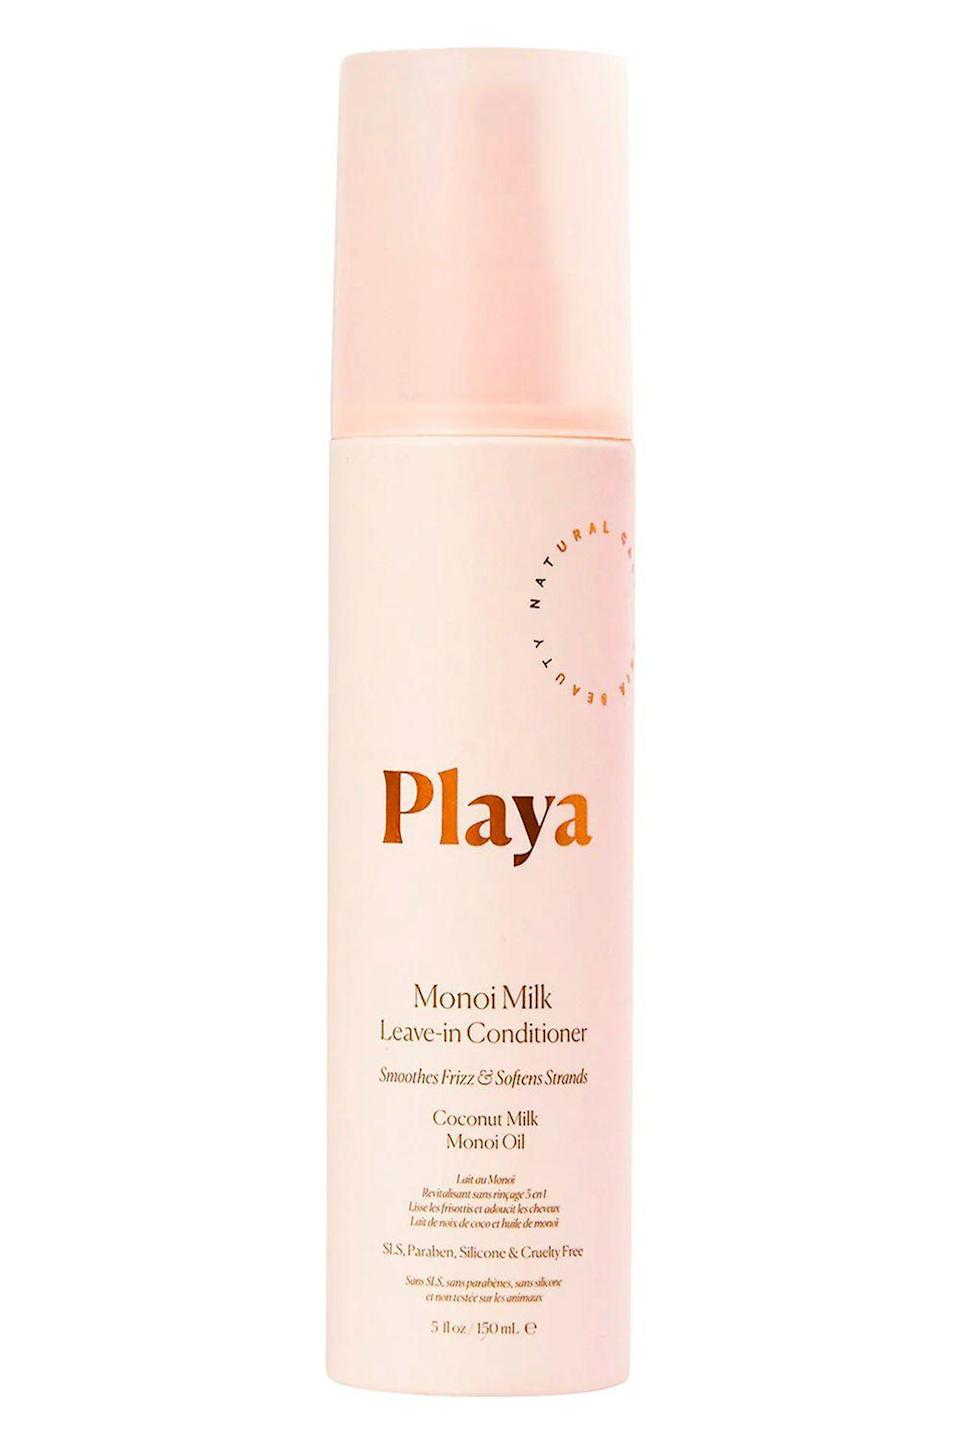 "<p><strong>Playa</strong></p><p>sephora.com</p><p><strong>$24.00</strong></p><p><a href=""https://go.redirectingat.com?id=74968X1596630&url=https%3A%2F%2Fwww.sephora.com%2Fproduct%2Fplaya-monoi-milk-leave-in-conditioner-P458953&sref=https%3A%2F%2Fwww.cosmopolitan.com%2Fstyle-beauty%2Fbeauty%2Fg27091073%2Fbest-hair-detangler%2F"" rel=""nofollow noopener"" target=""_blank"" data-ylk=""slk:Shop Now"" class=""link rapid-noclick-resp"">Shop Now</a></p><p>This multitasking detangling spray's a major time saver. A few spritzes on either wet or dry hair<strong> add instant moisture for easy detangling</strong> (bless you, <a href=""https://www.cosmopolitan.com/style-beauty/beauty/a27305882/coconut-oil-benefits-skin/"" rel=""nofollow noopener"" target=""_blank"" data-ylk=""slk:coconut"" class=""link rapid-noclick-resp"">coconut</a> milk and monoi oil), minimize frizz and flyaways, and help prep your hair for any type of style.</p>"